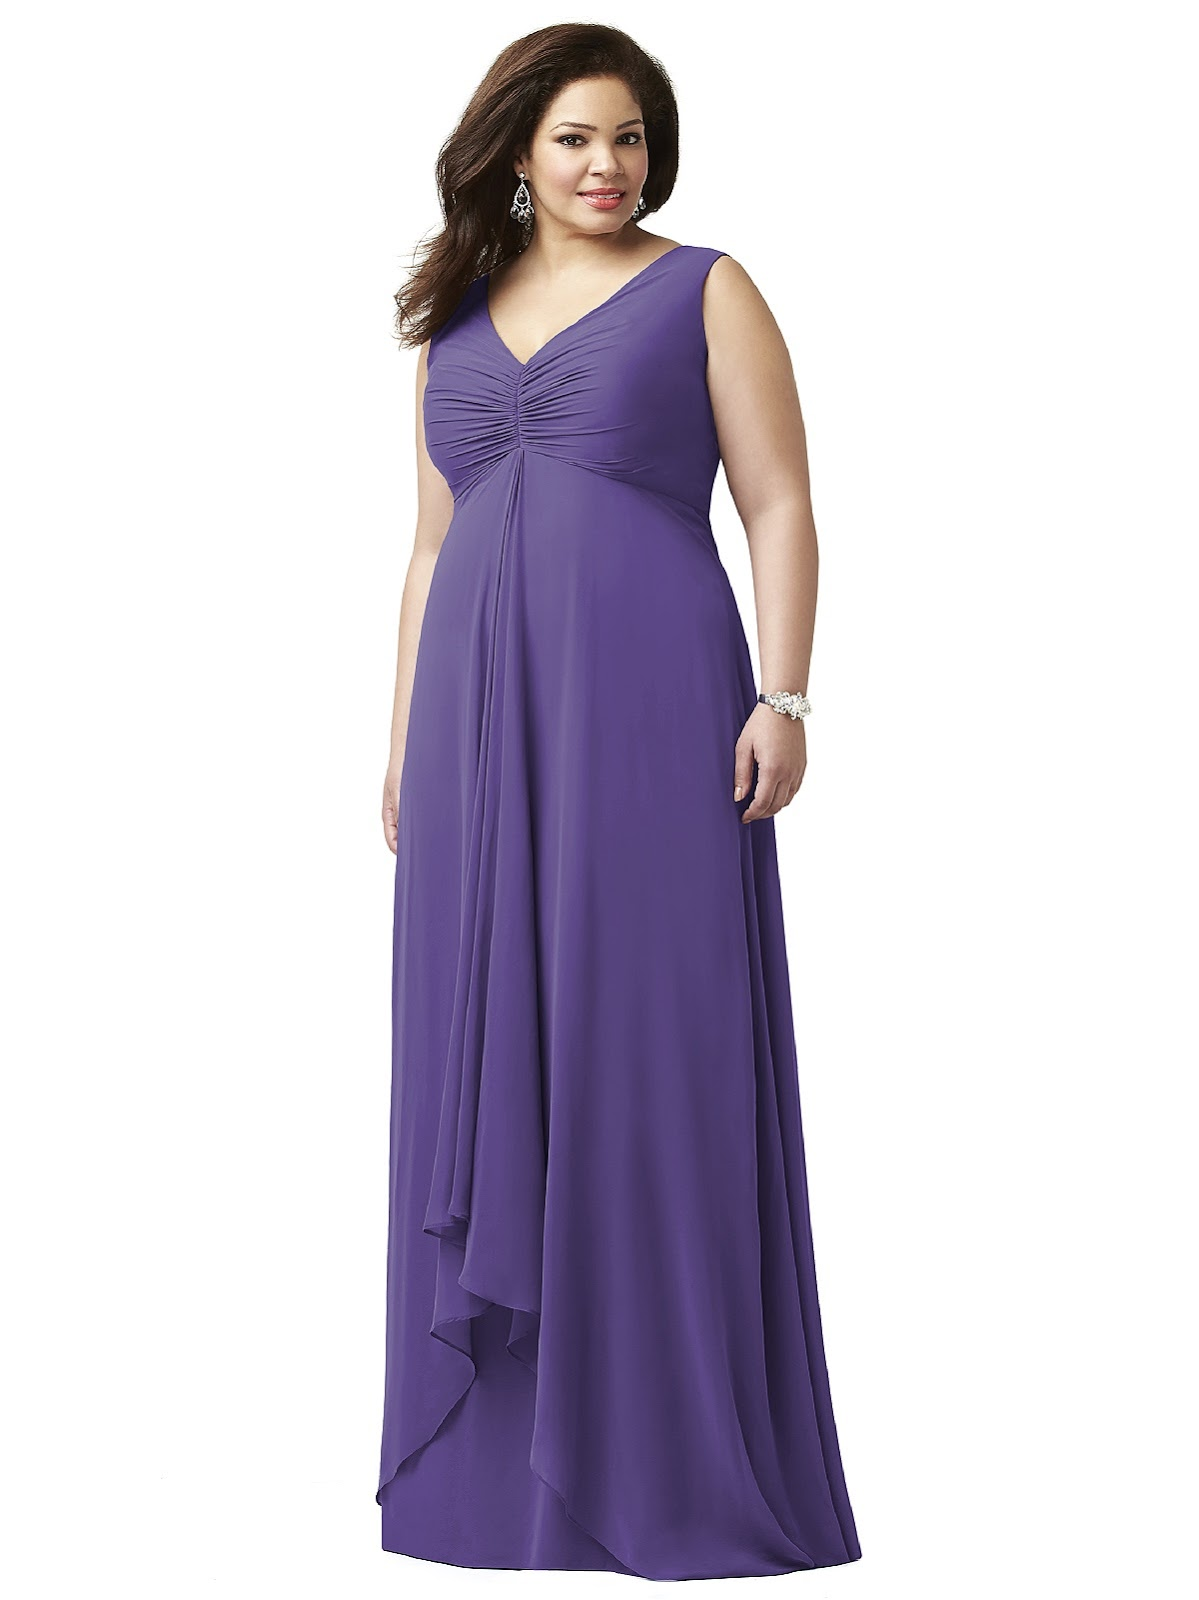 Why You Should Consider Purple Plus Size Bridesmaid